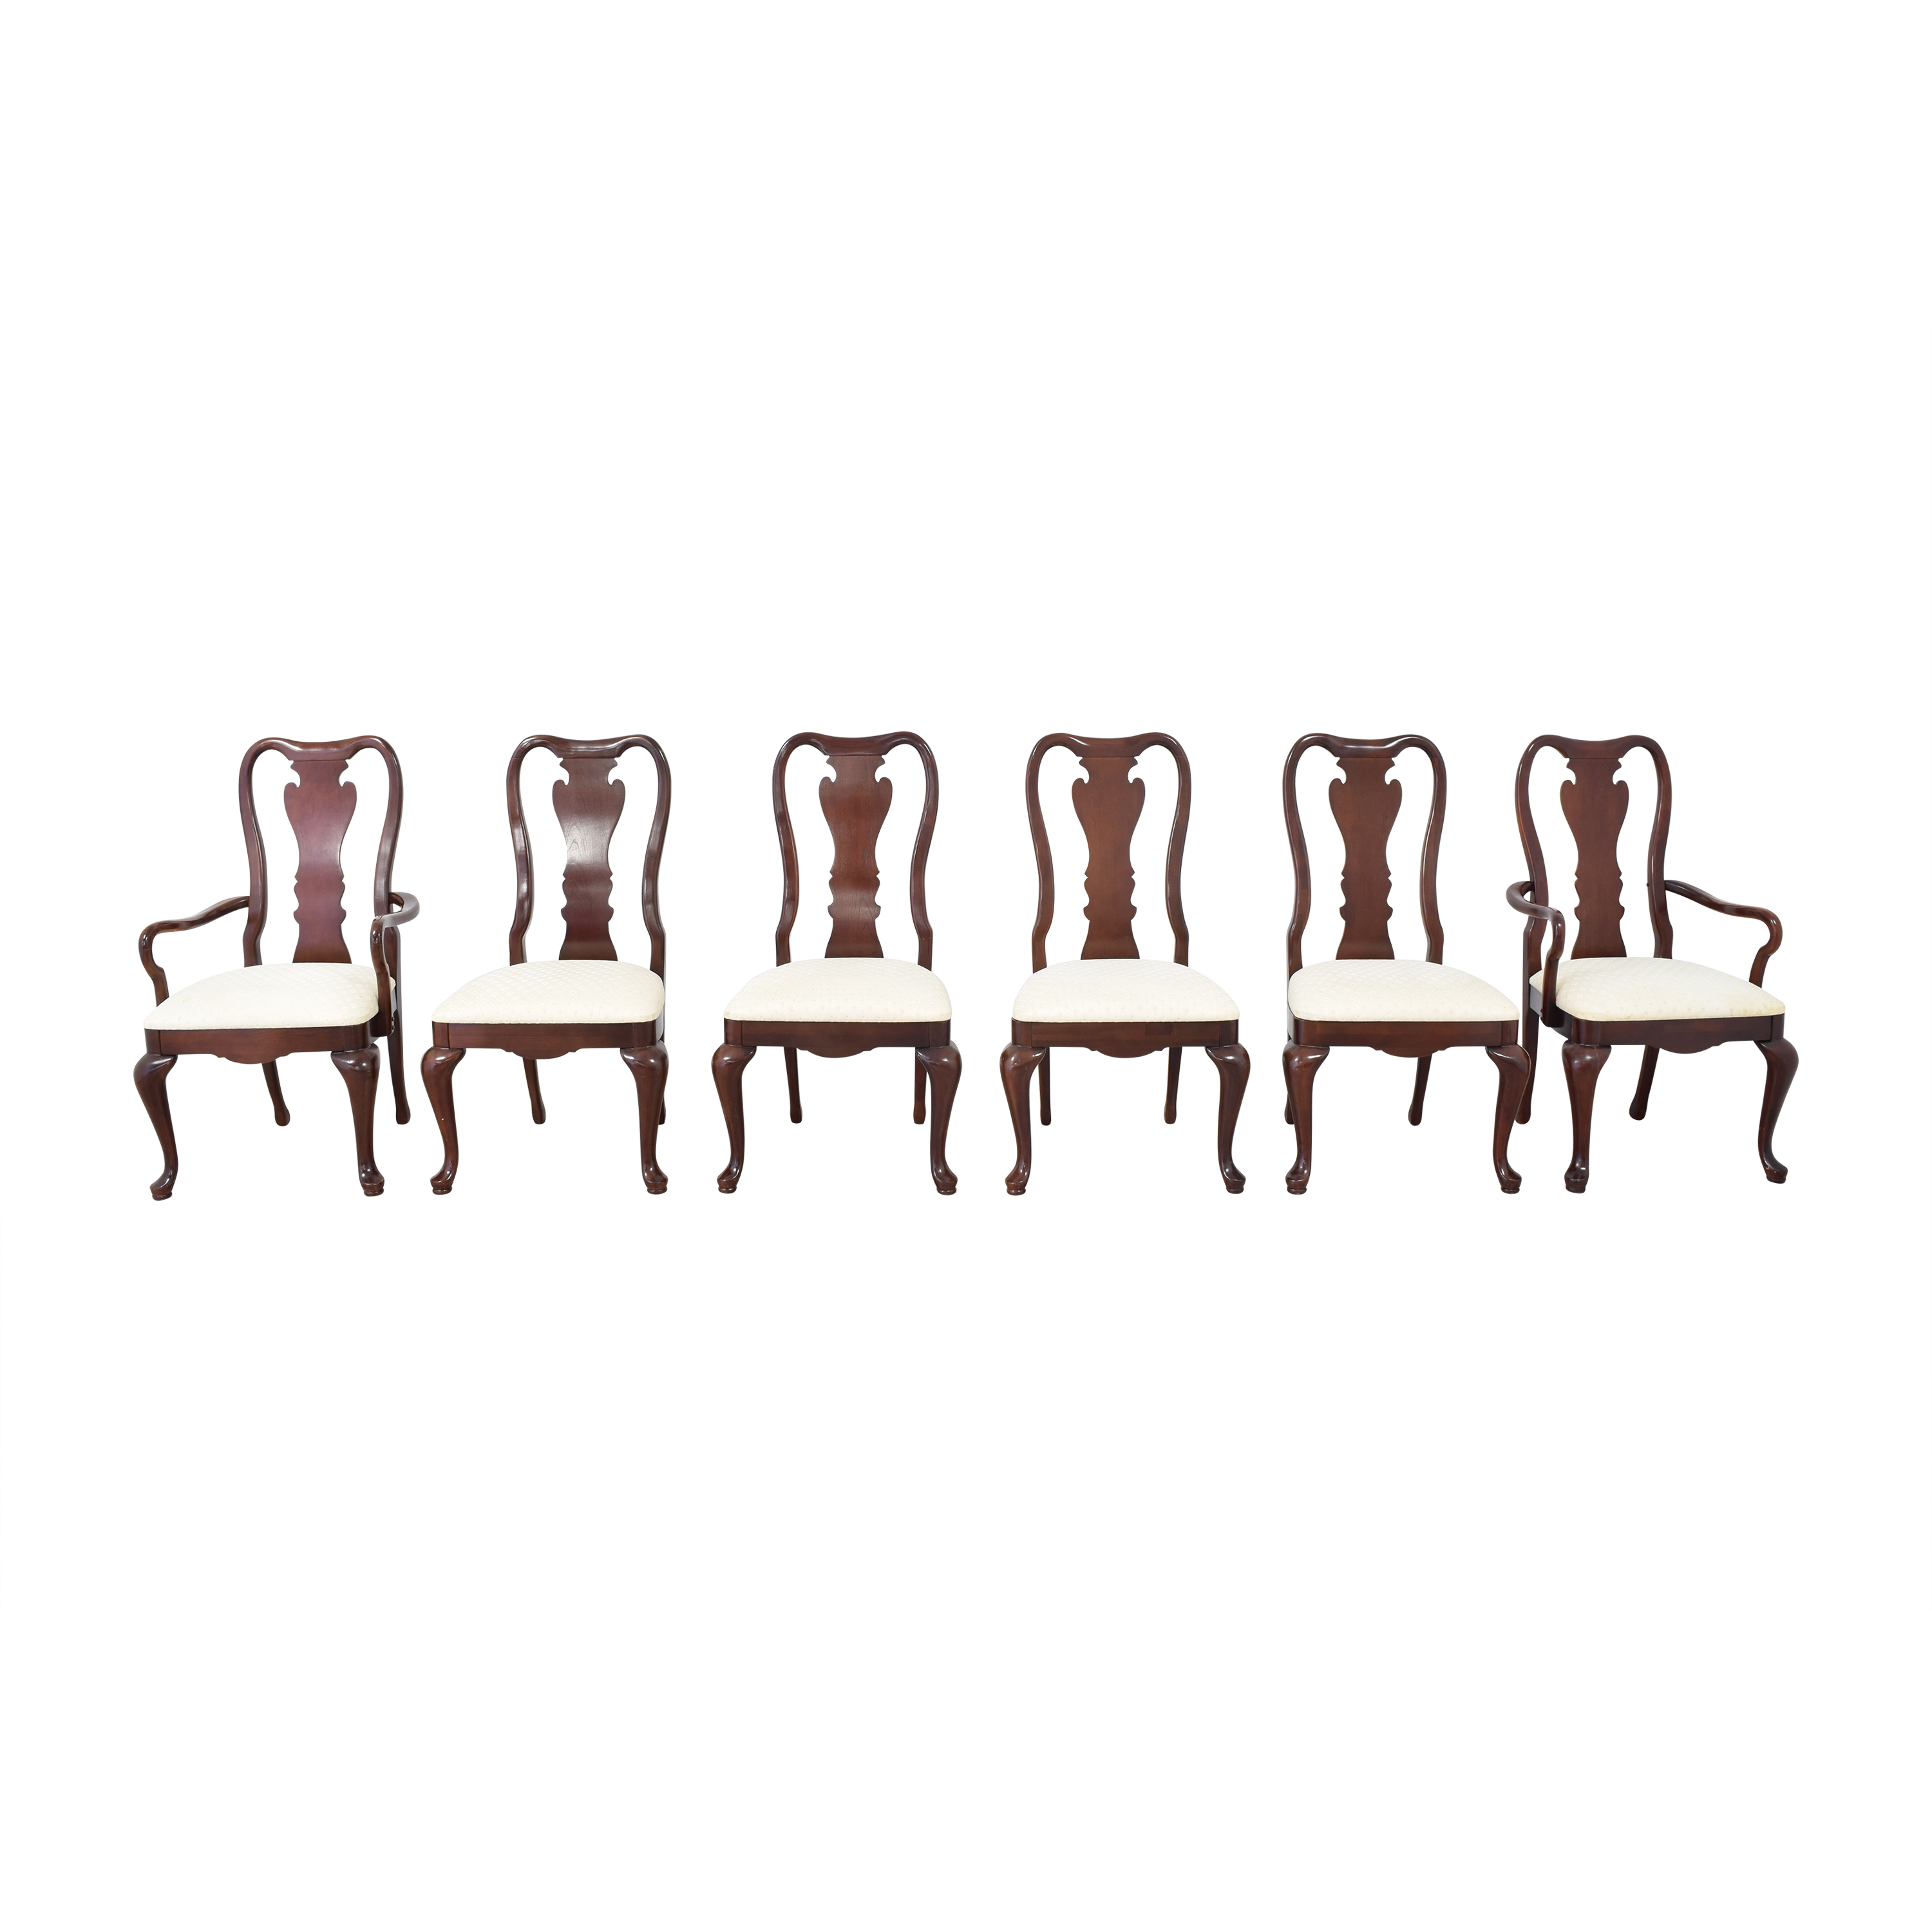 Thomasville Thomasville Winston Court Collection Dining Chairs for sale